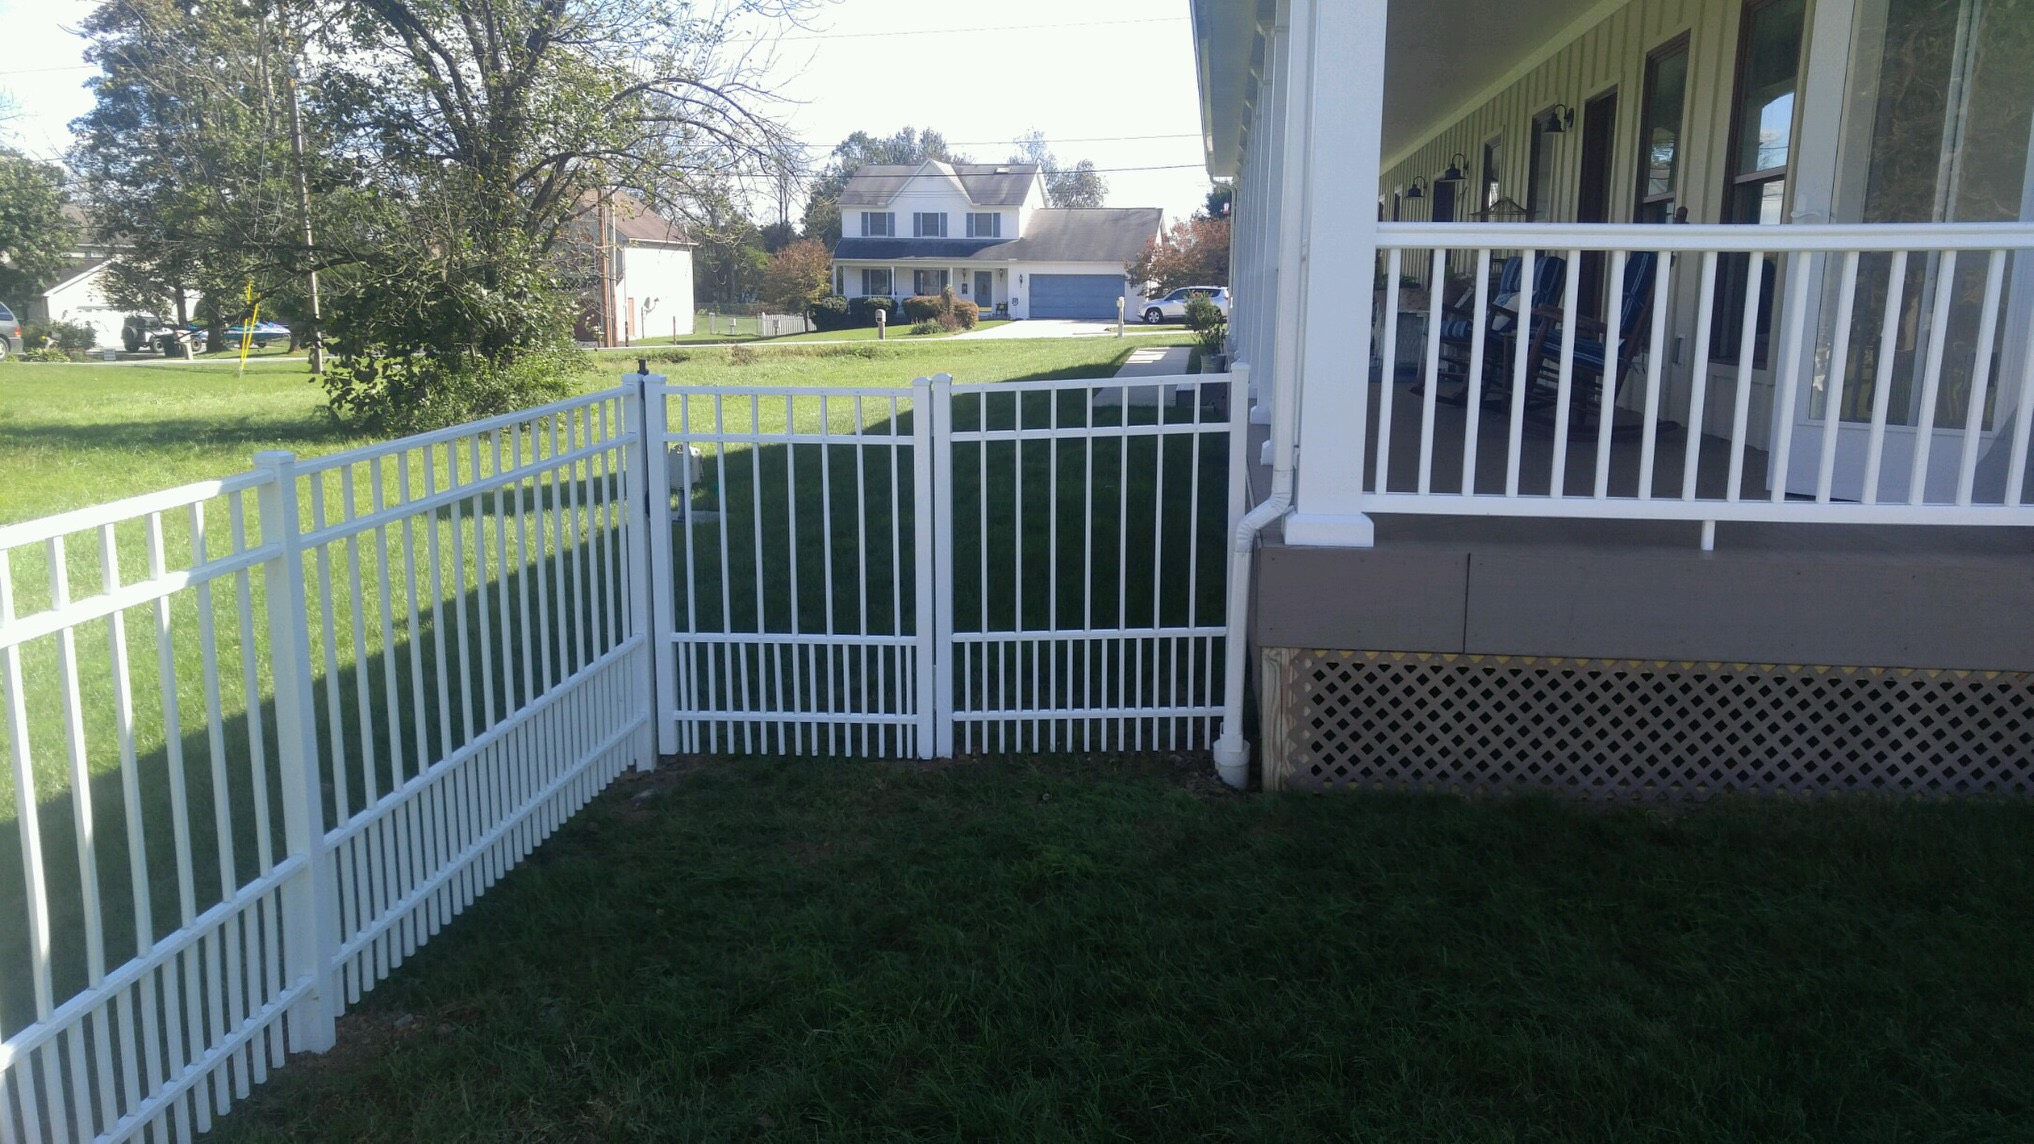 Puppy Picket Fences